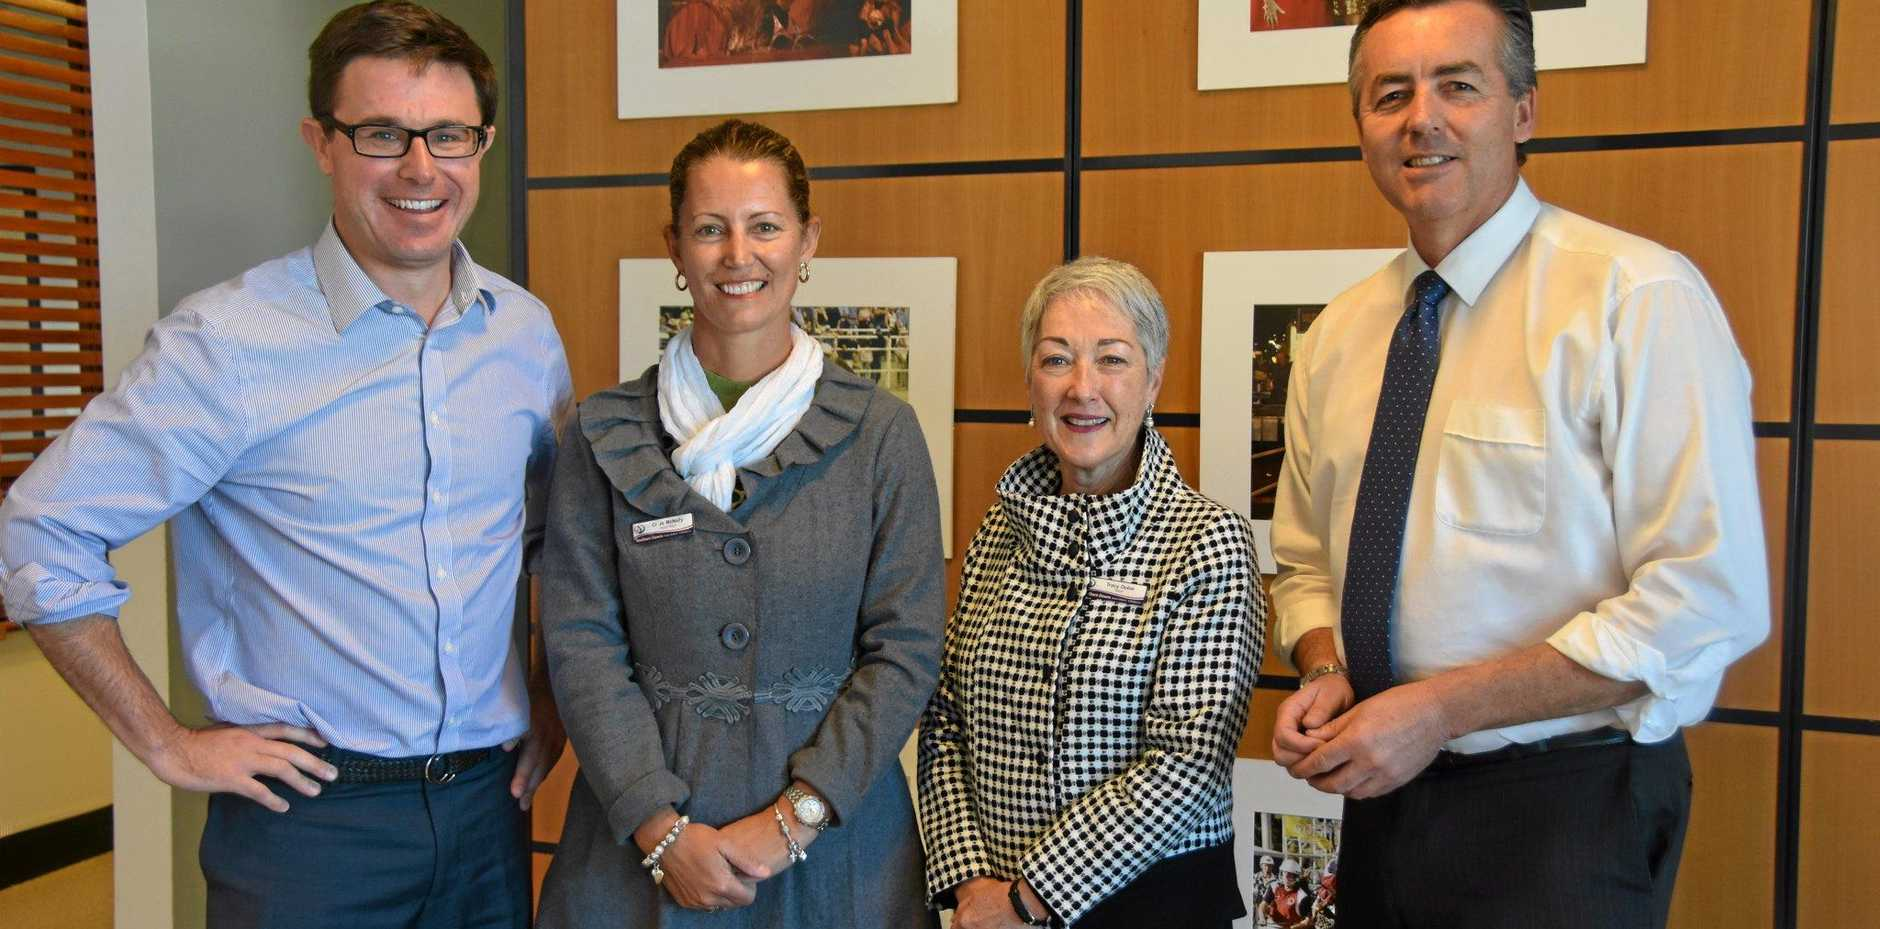 WHERE'S WARWICK: MP Darren Chester met with David Littleproud, Cr Jo Mcnally and Mayor Tracy Dobie.